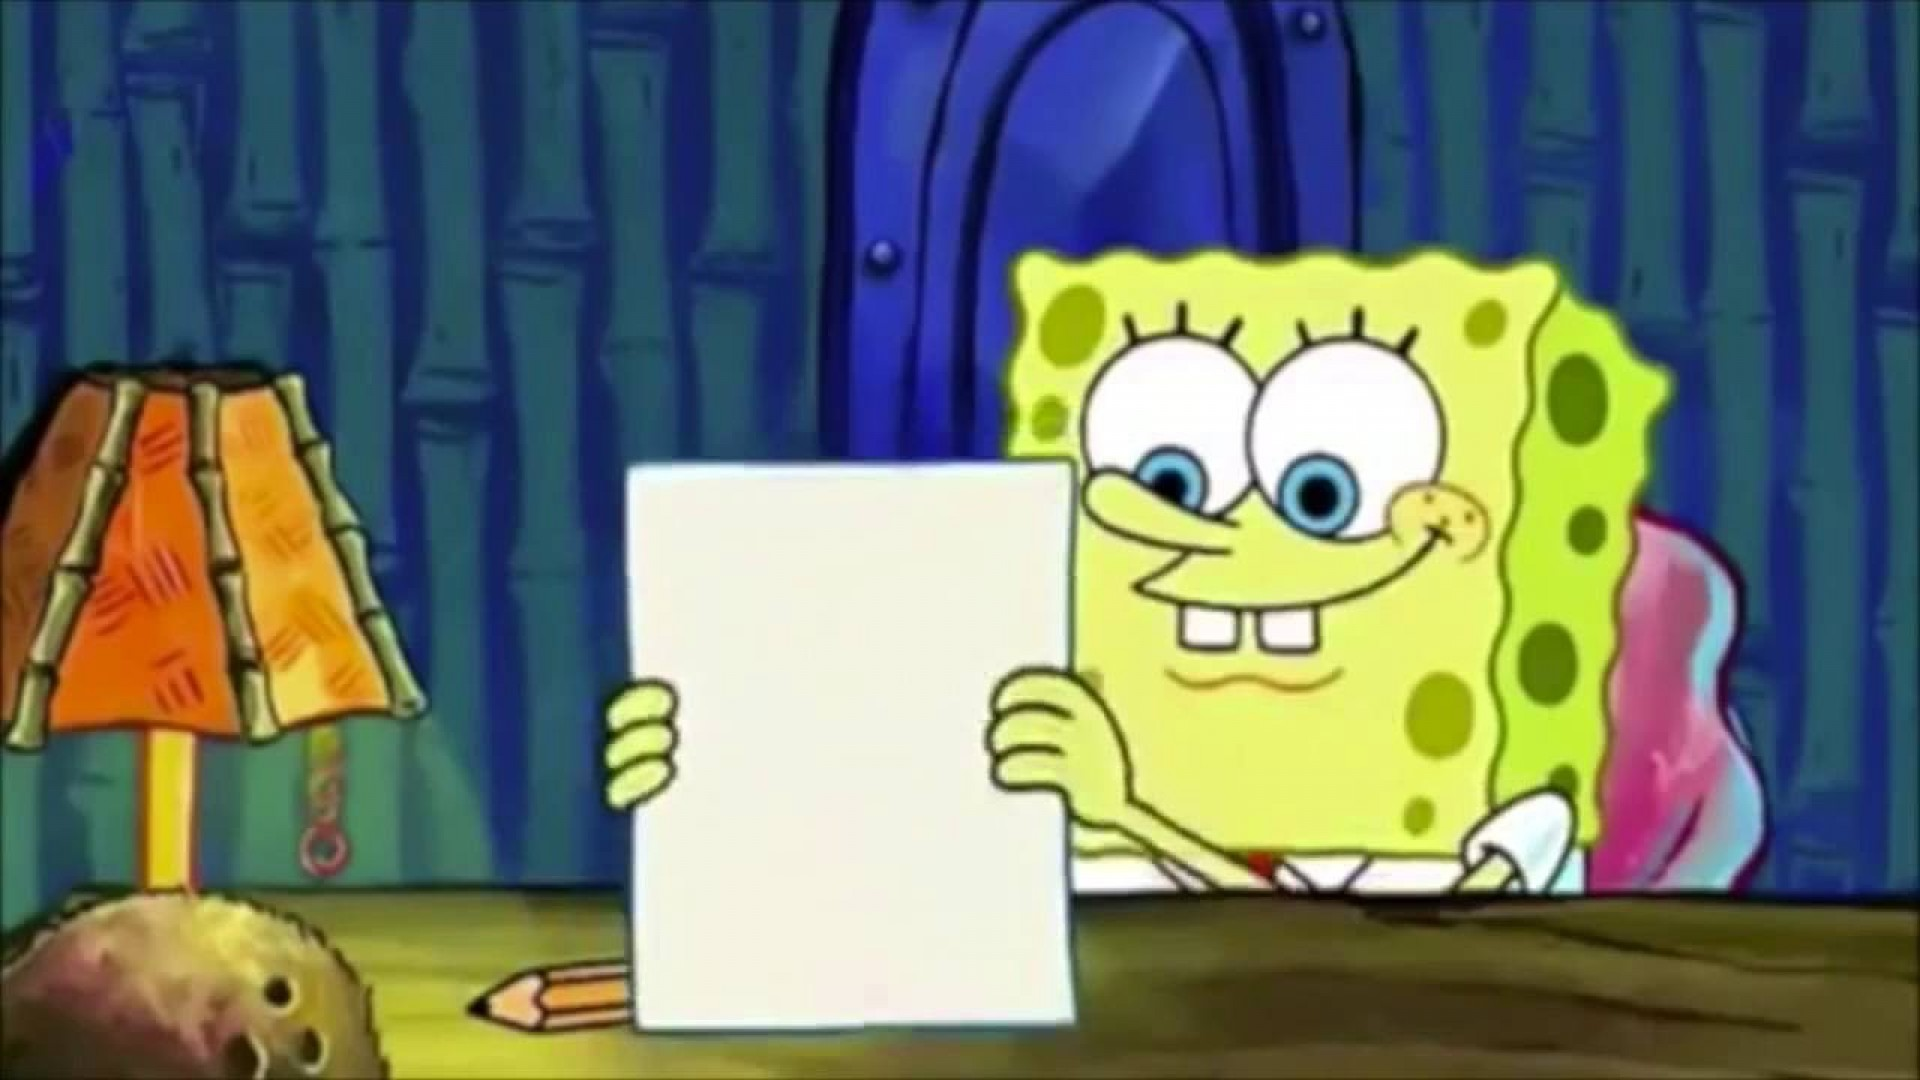 008 Spongebob Writing Essay Gif Example An By Squarepants Youtube Archaicawful 1920